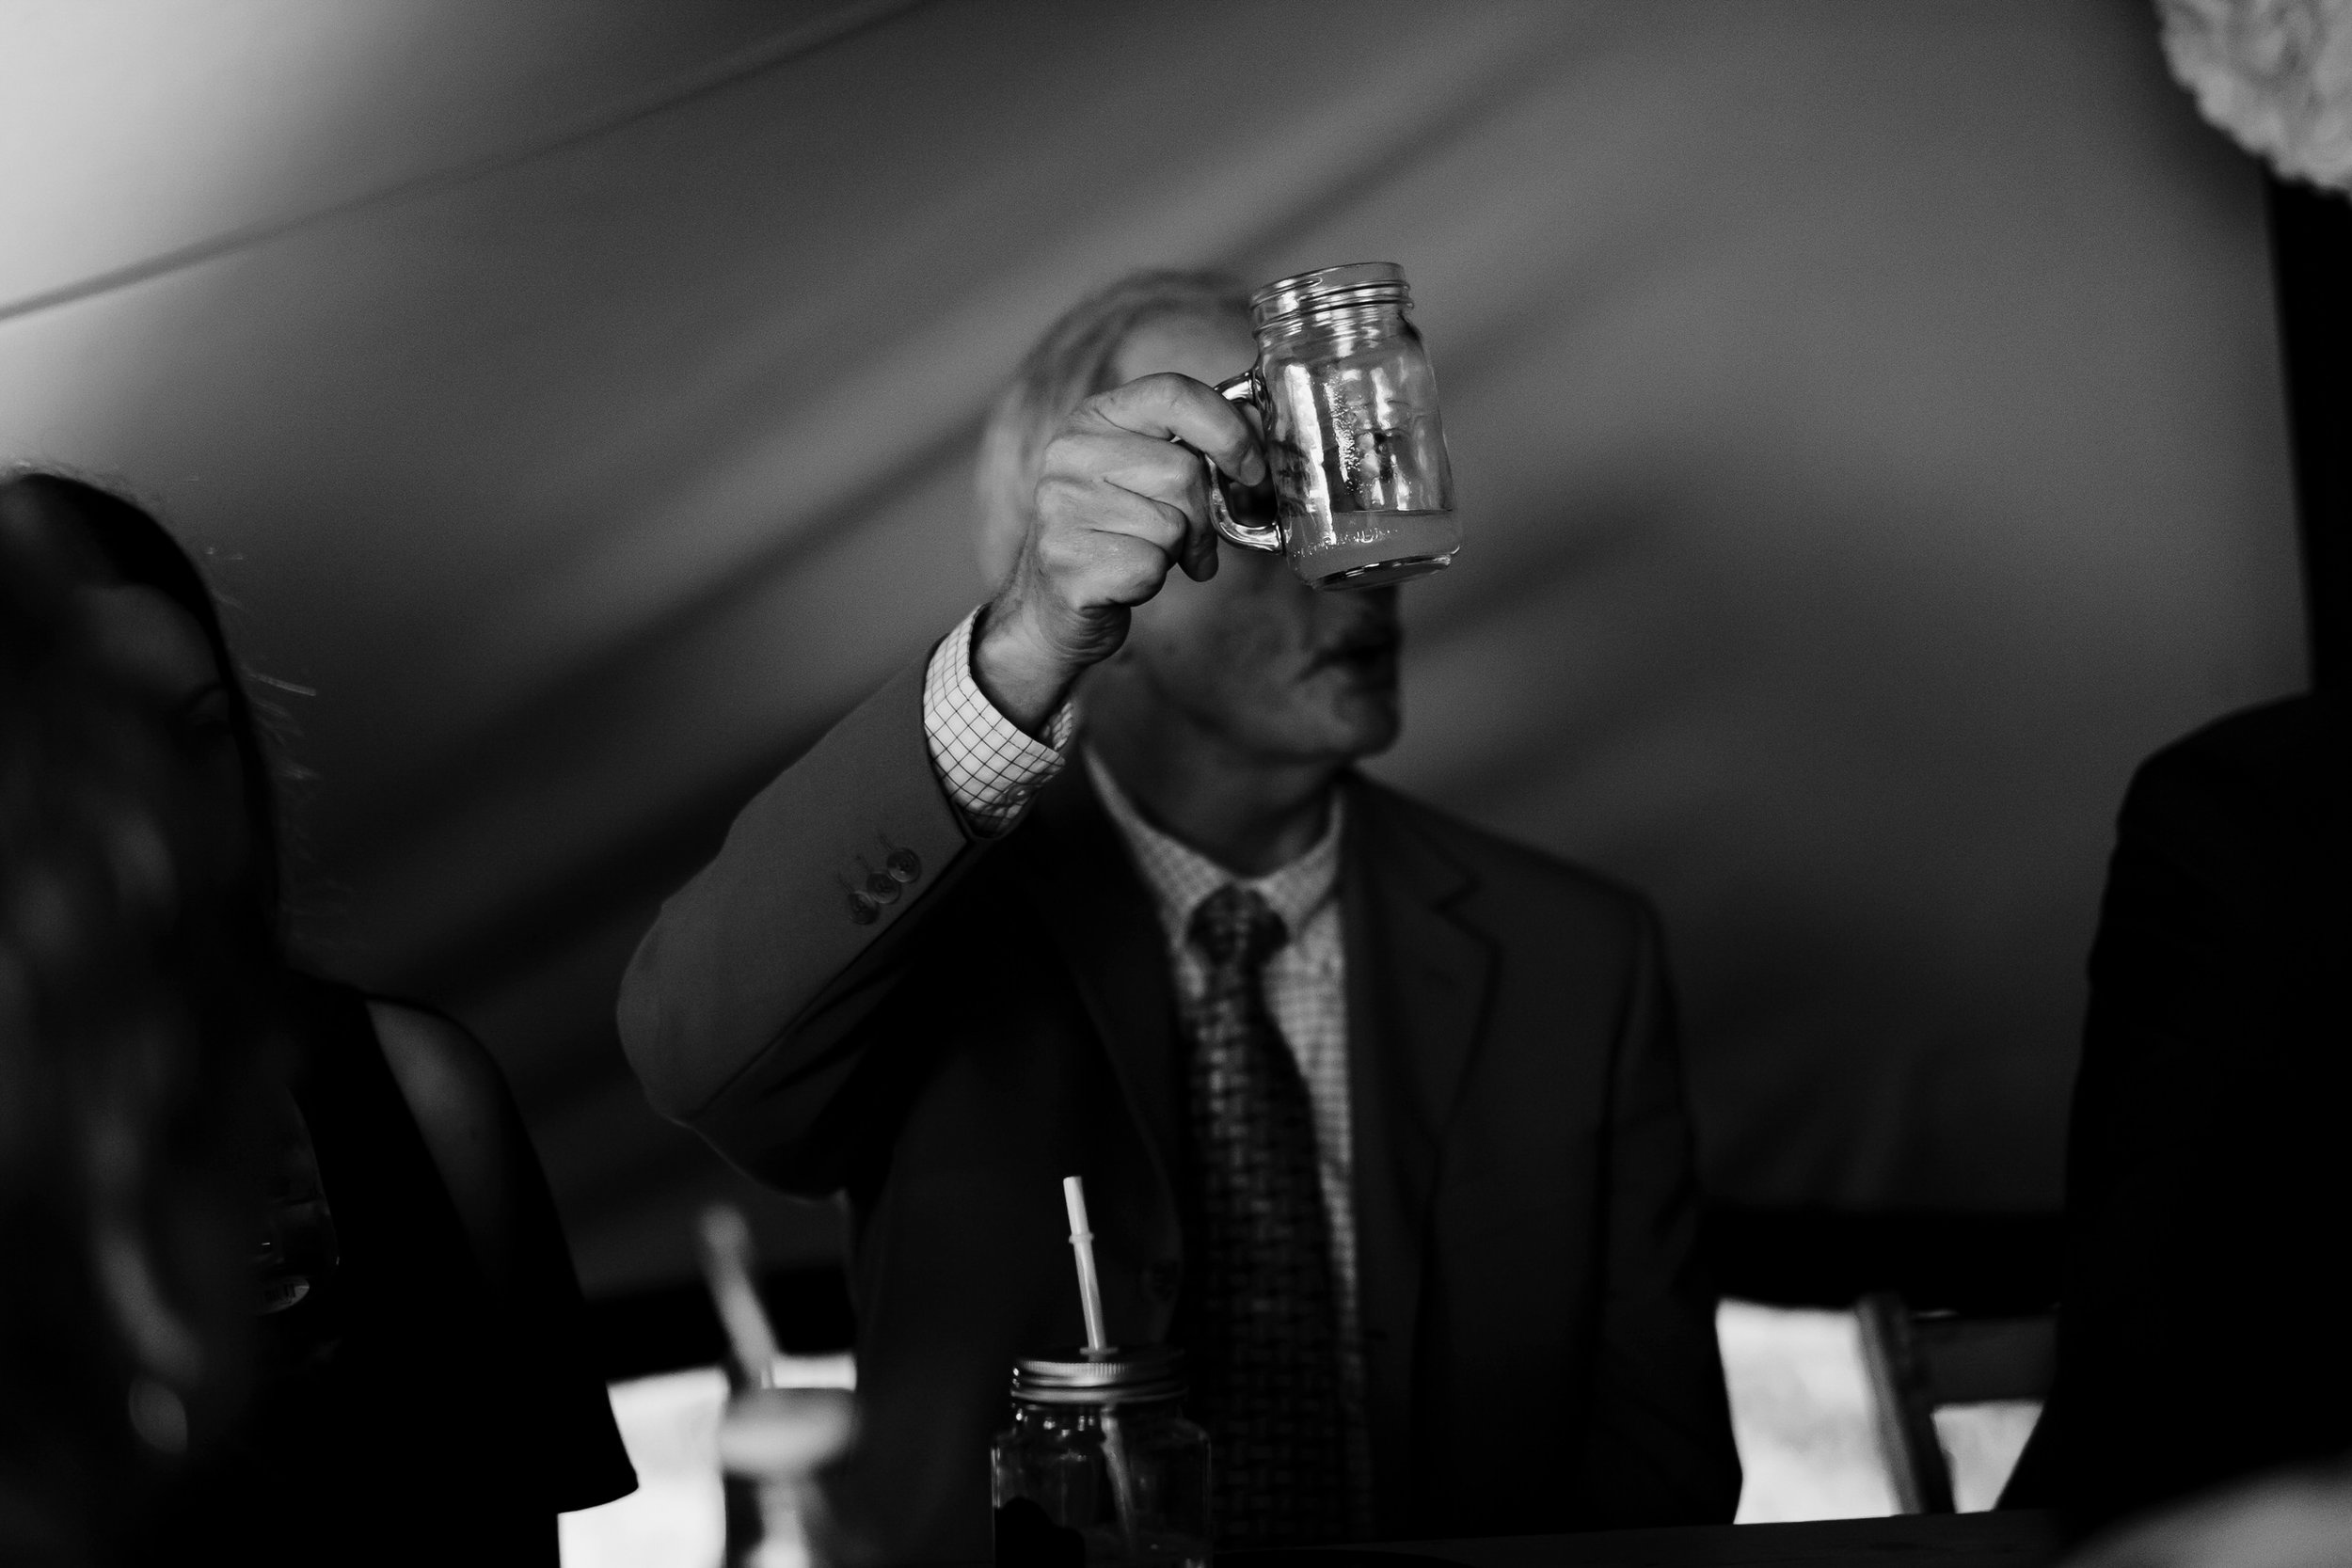 Guest raises a glass to toast groom's following his speech.